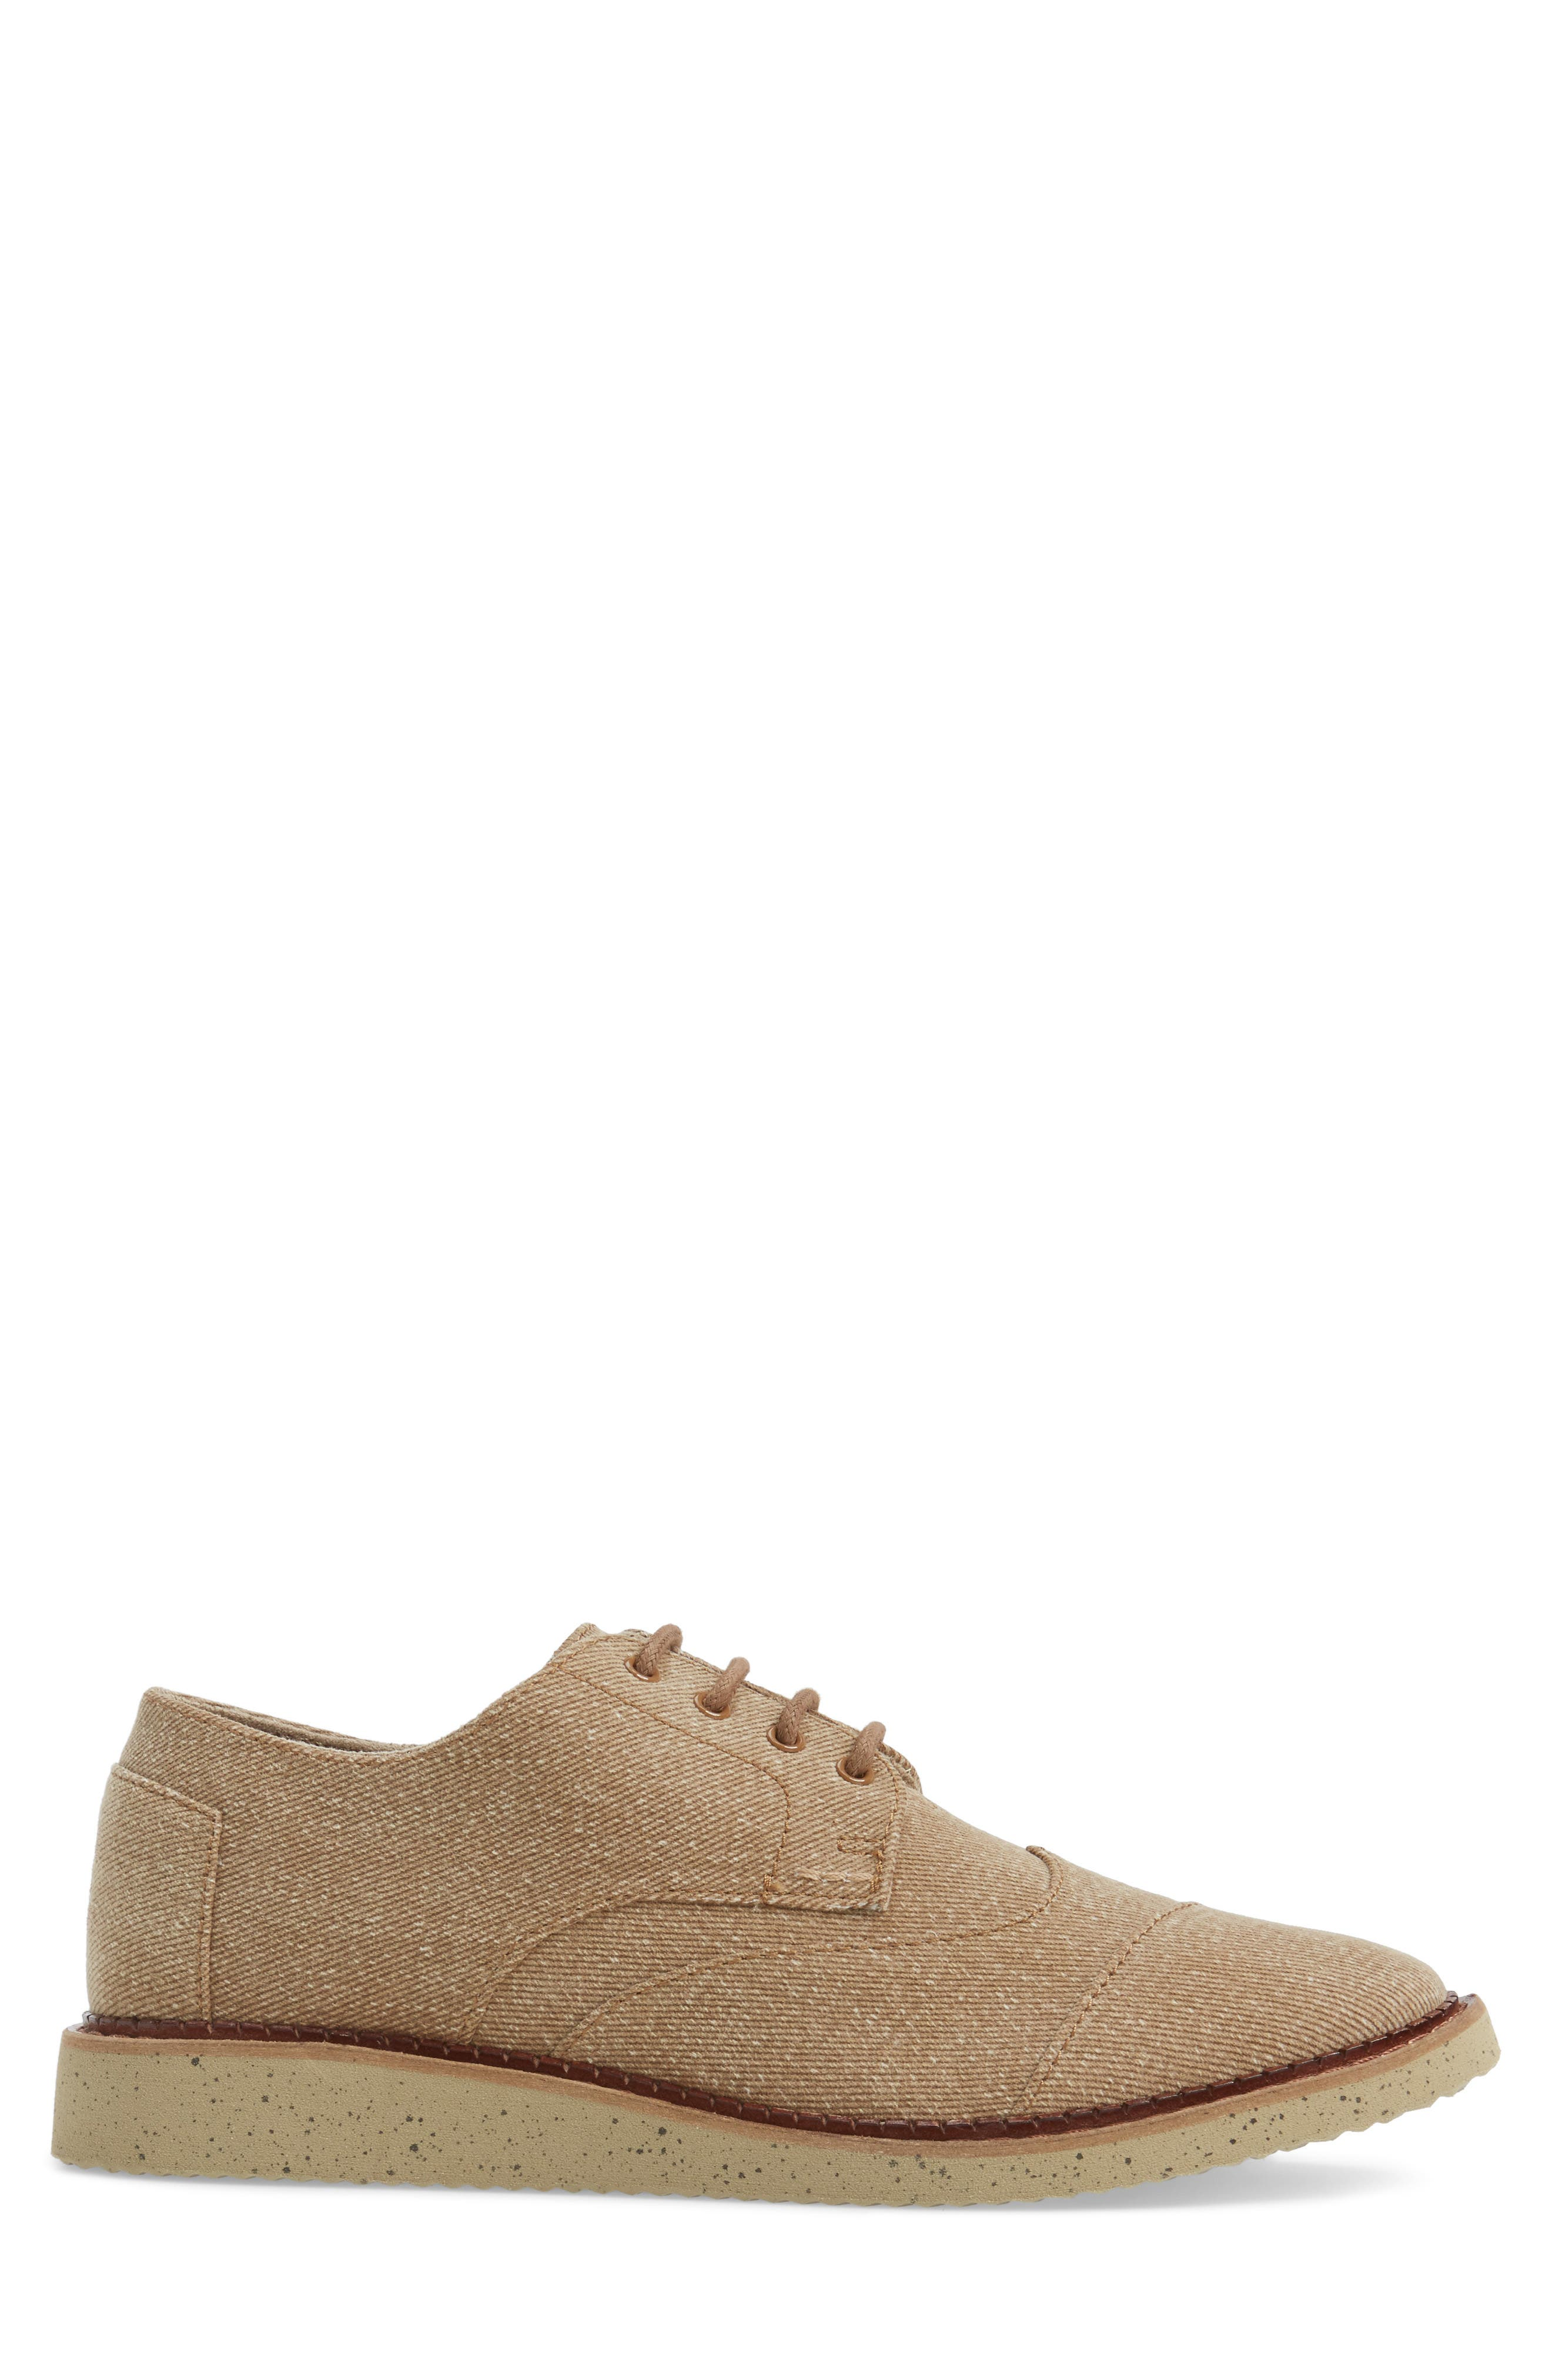 'Classic Brogue' Cotton Twill Derby,                             Alternate thumbnail 41, color,